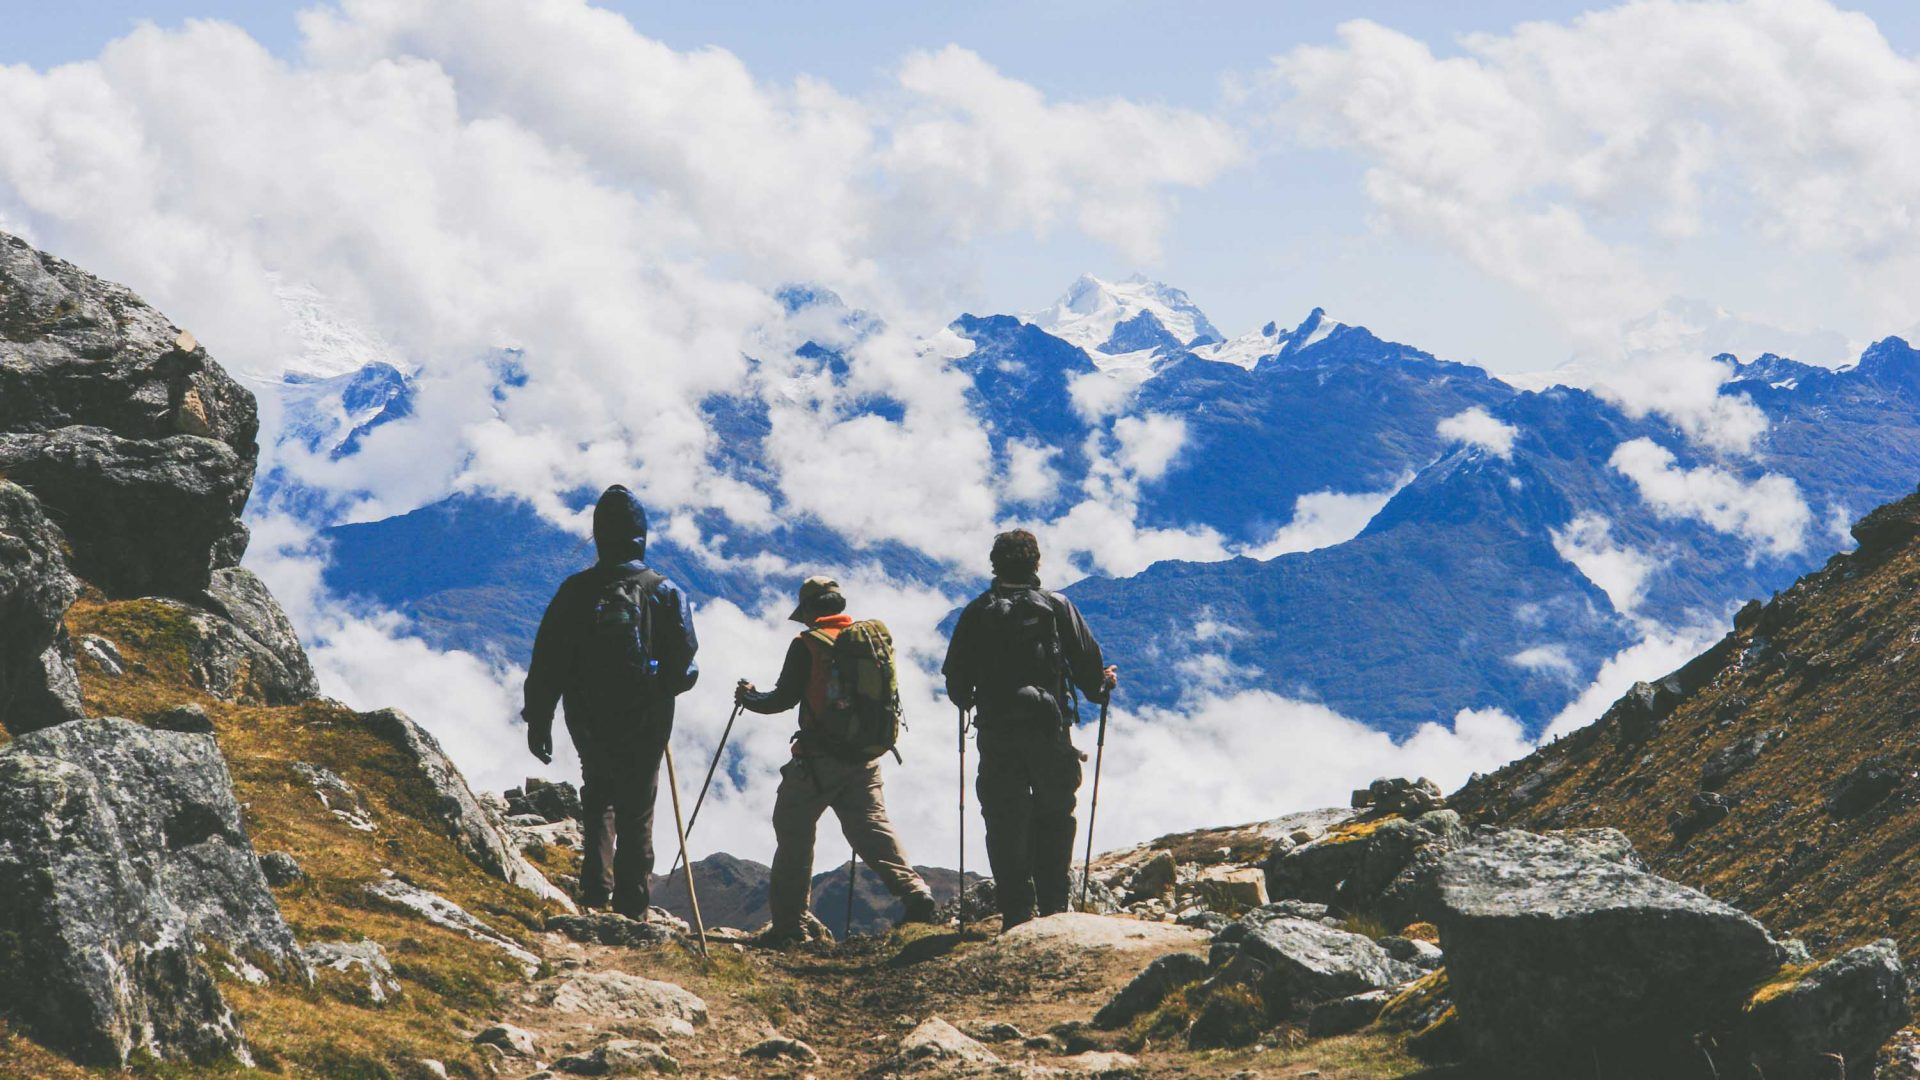 This Peruvian hike is perfect for people who don't like hiking